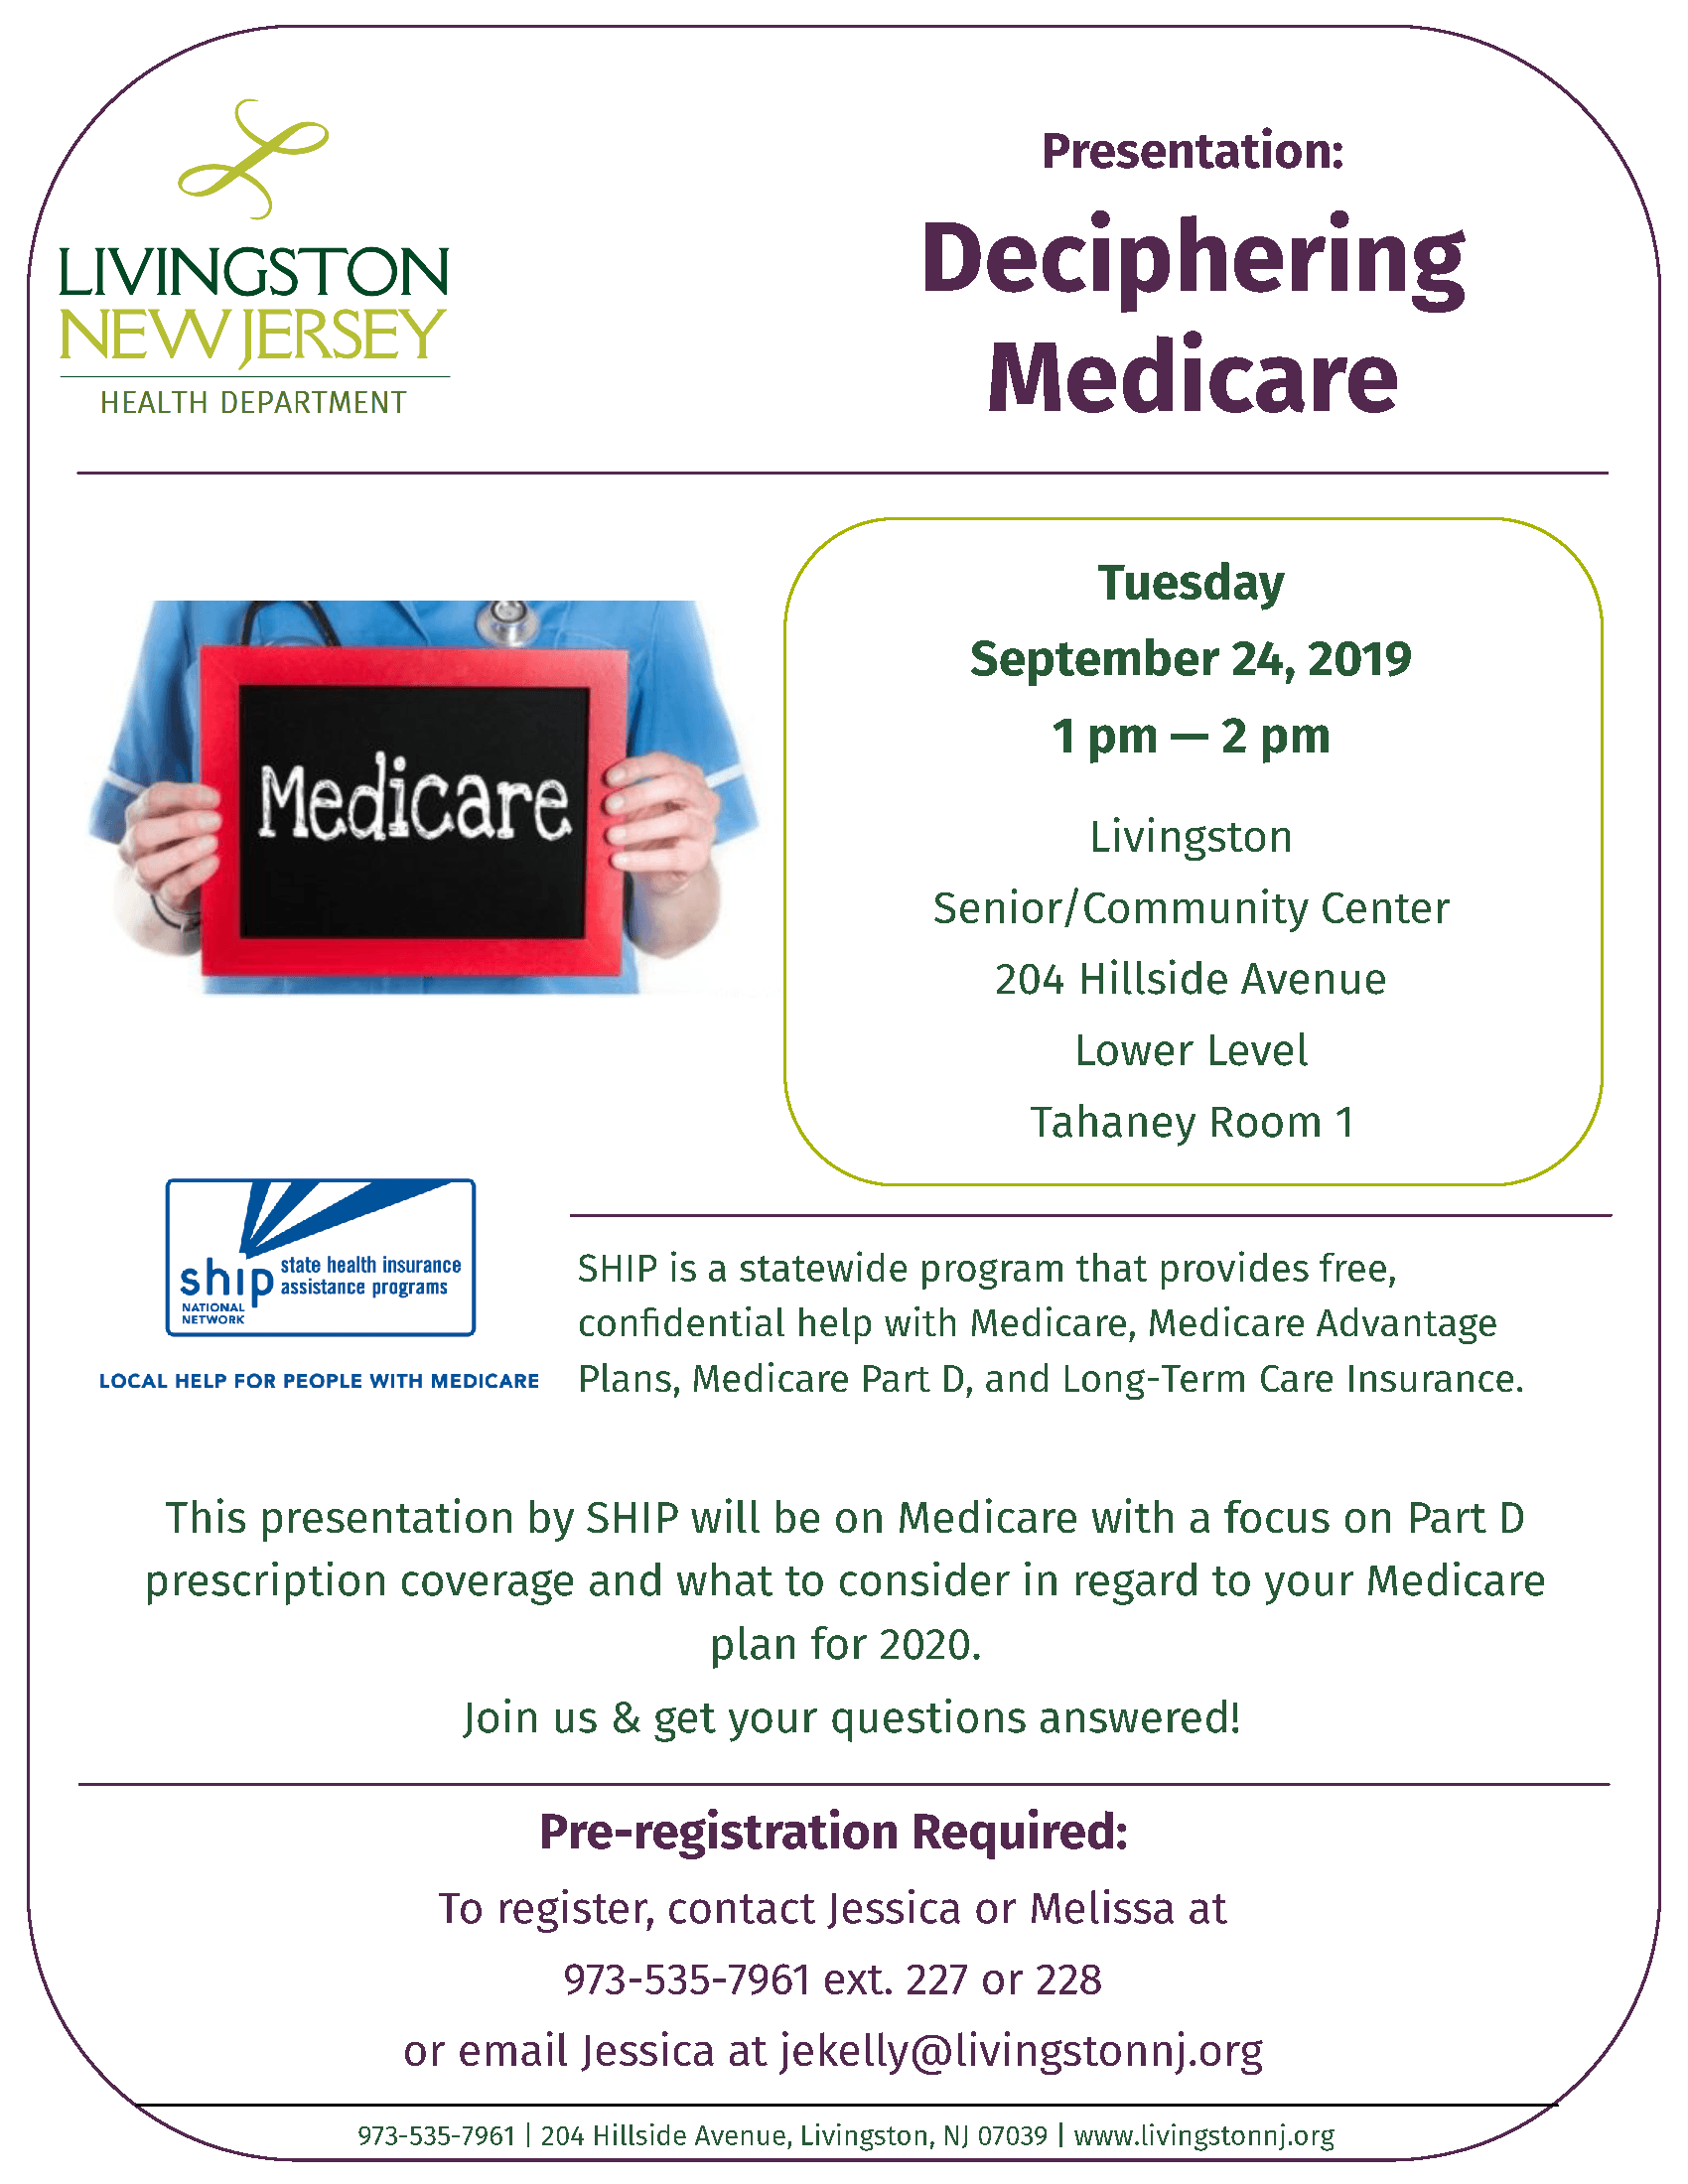 Presentation: Deciphering Medicare on Tuesday, September 24, 2019. Details at livingstonnj.org/Healt